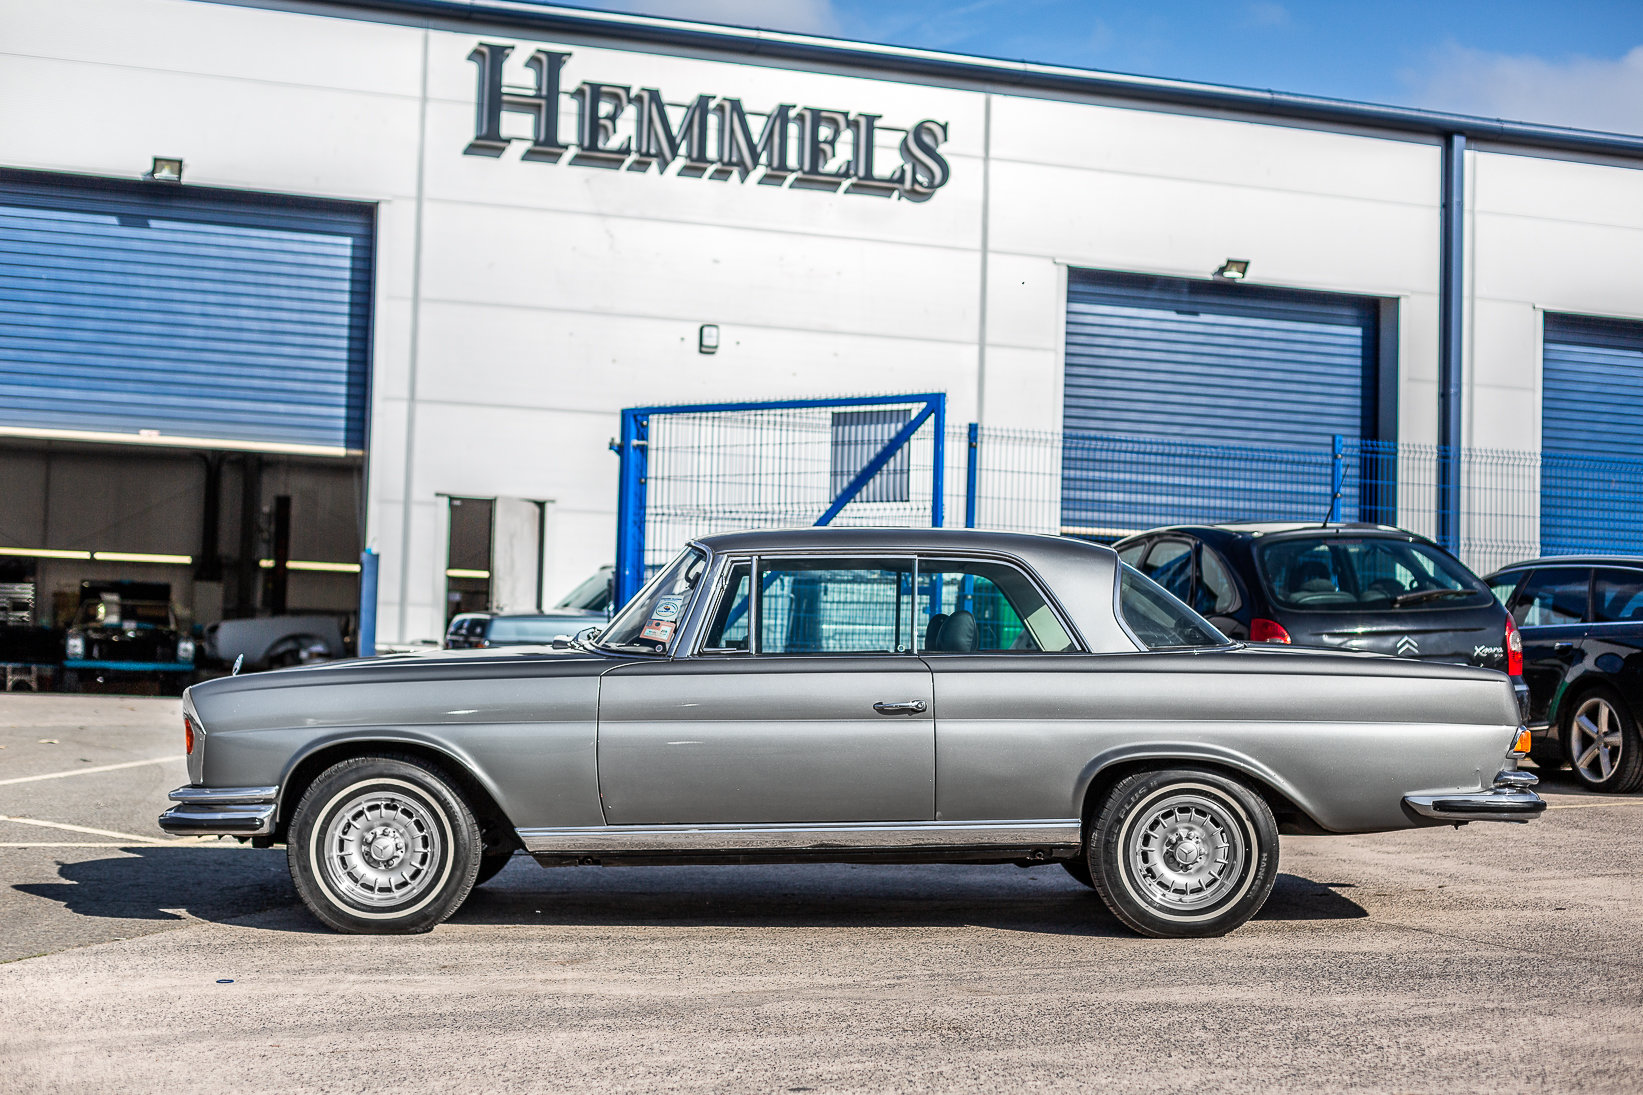 1970 Mercedes-Benz 280 SE W111 in Silver by Hemmels For Sale (picture 2 of 6)